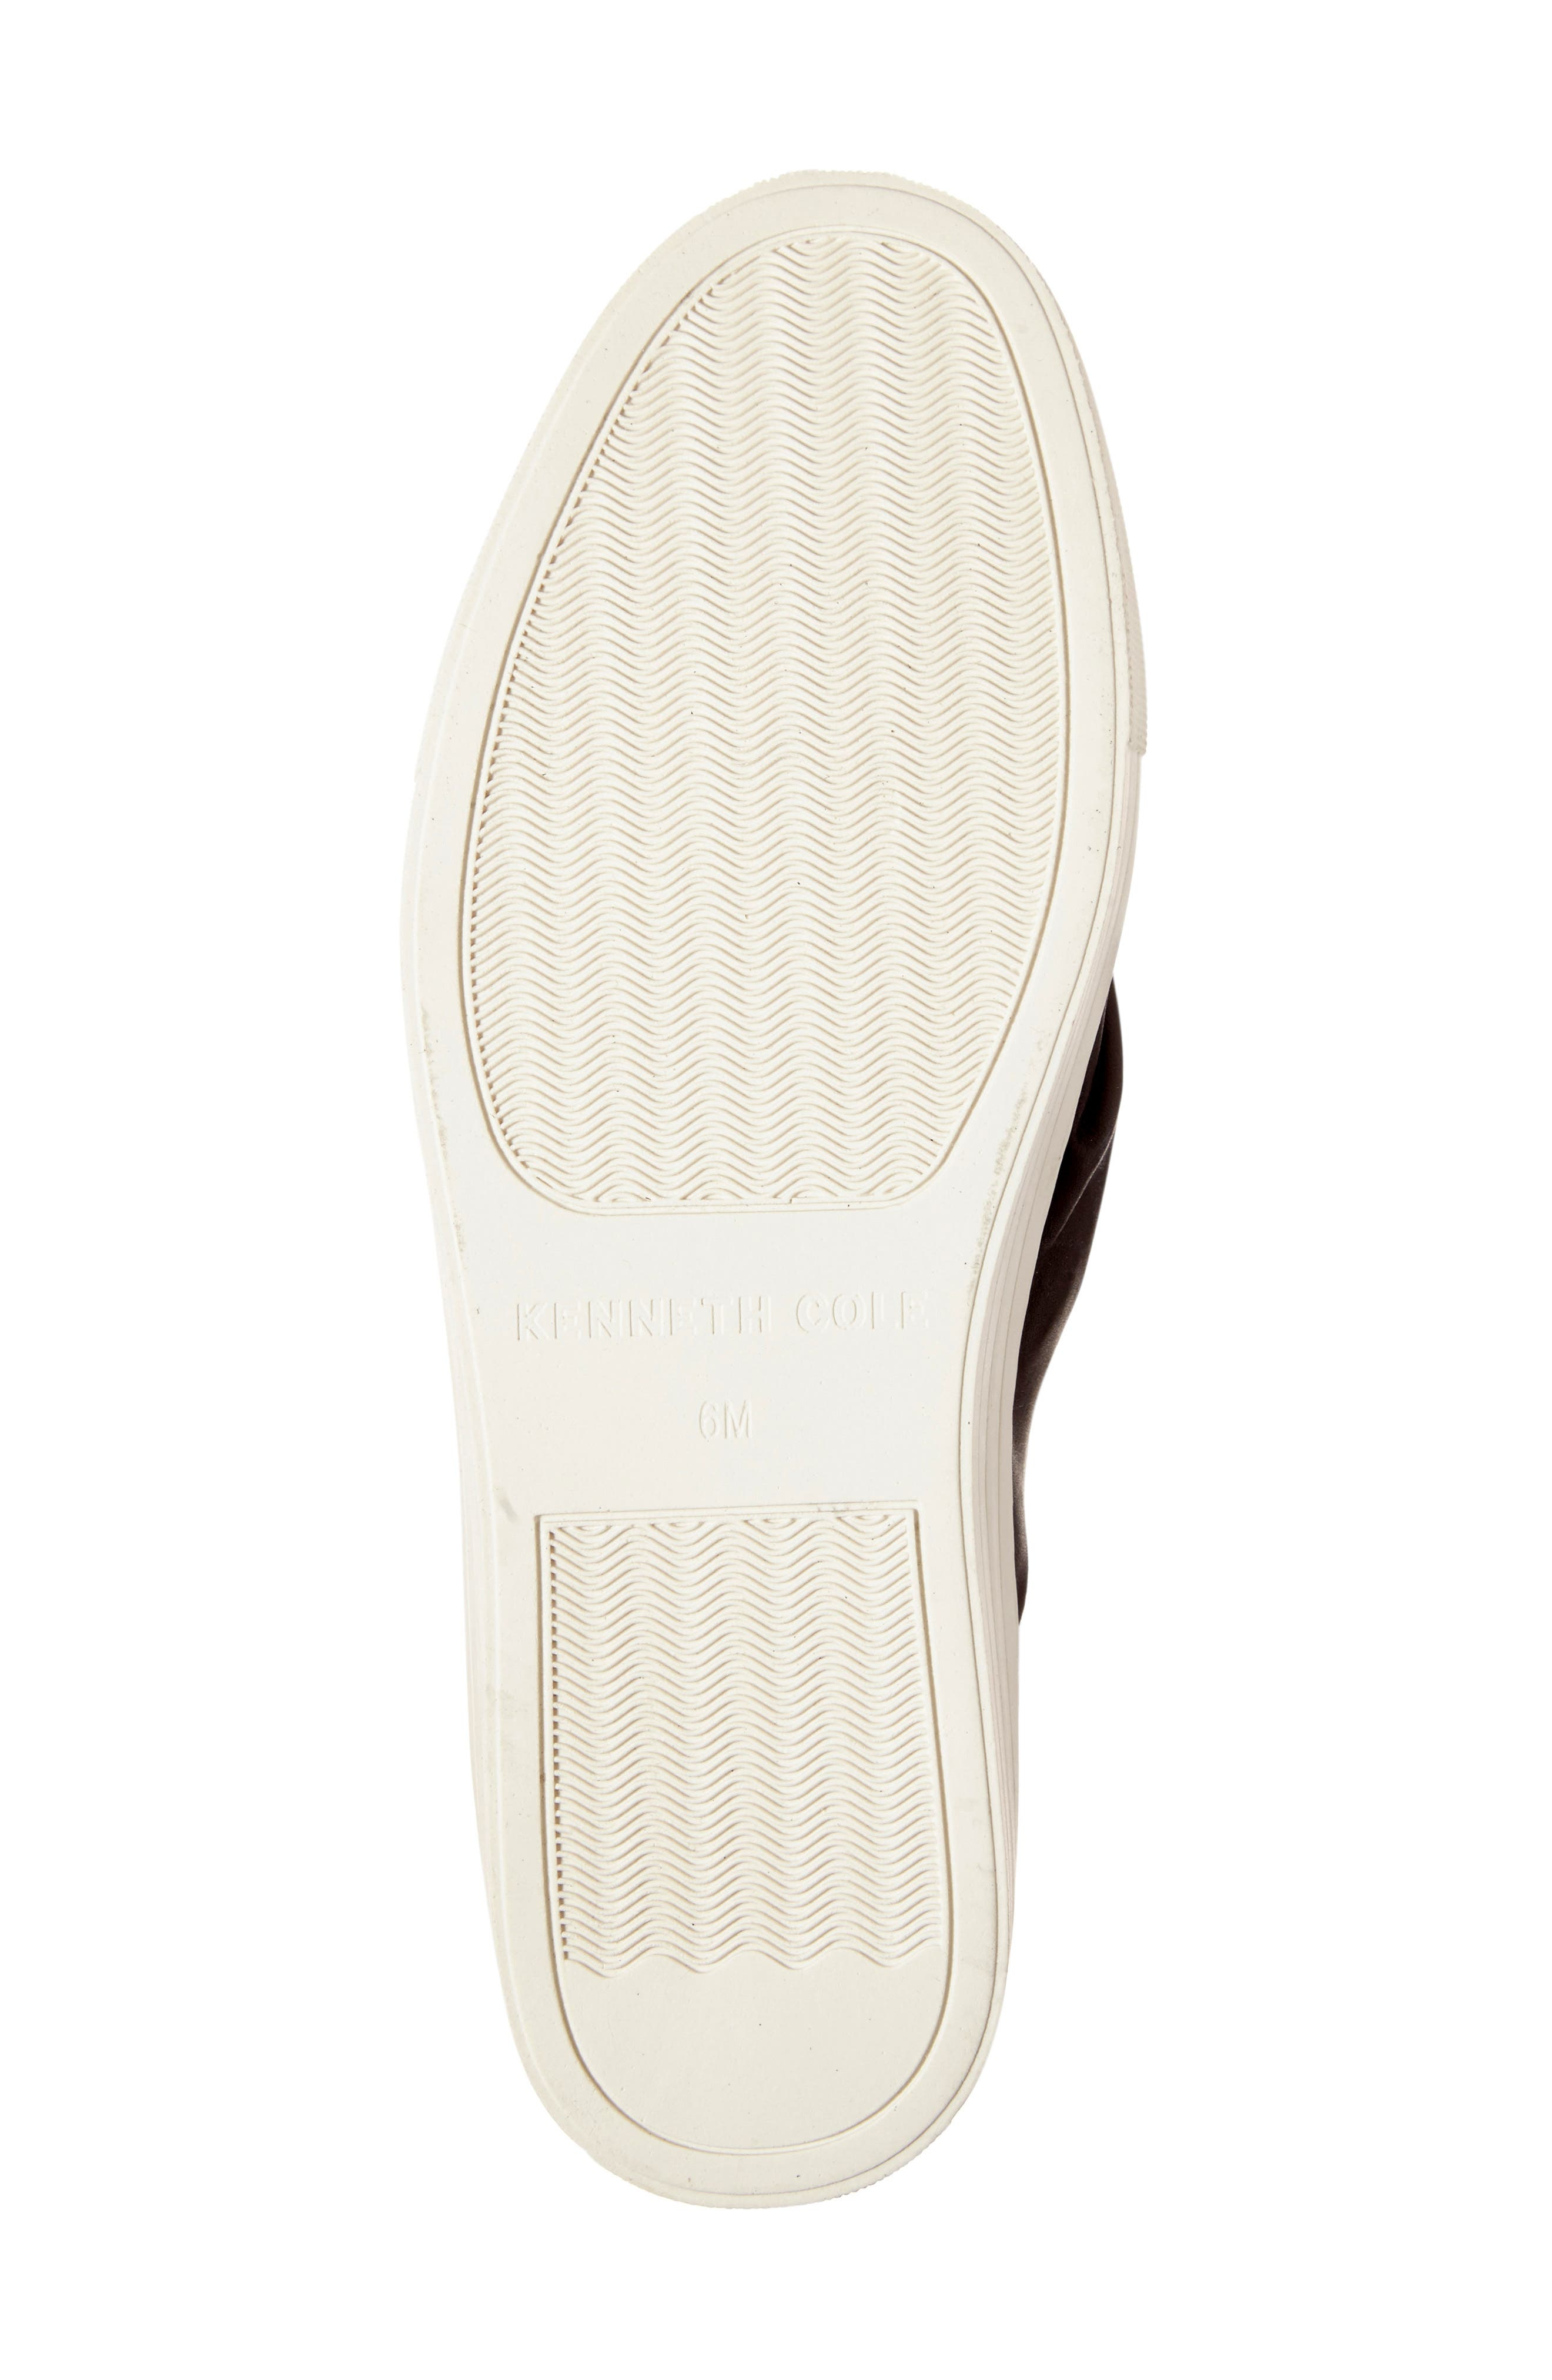 KENNETH COLE NEW YORK, Kenneth Cole Aaron Twisted Knot Flatform Sneaker, Alternate thumbnail 4, color, 001